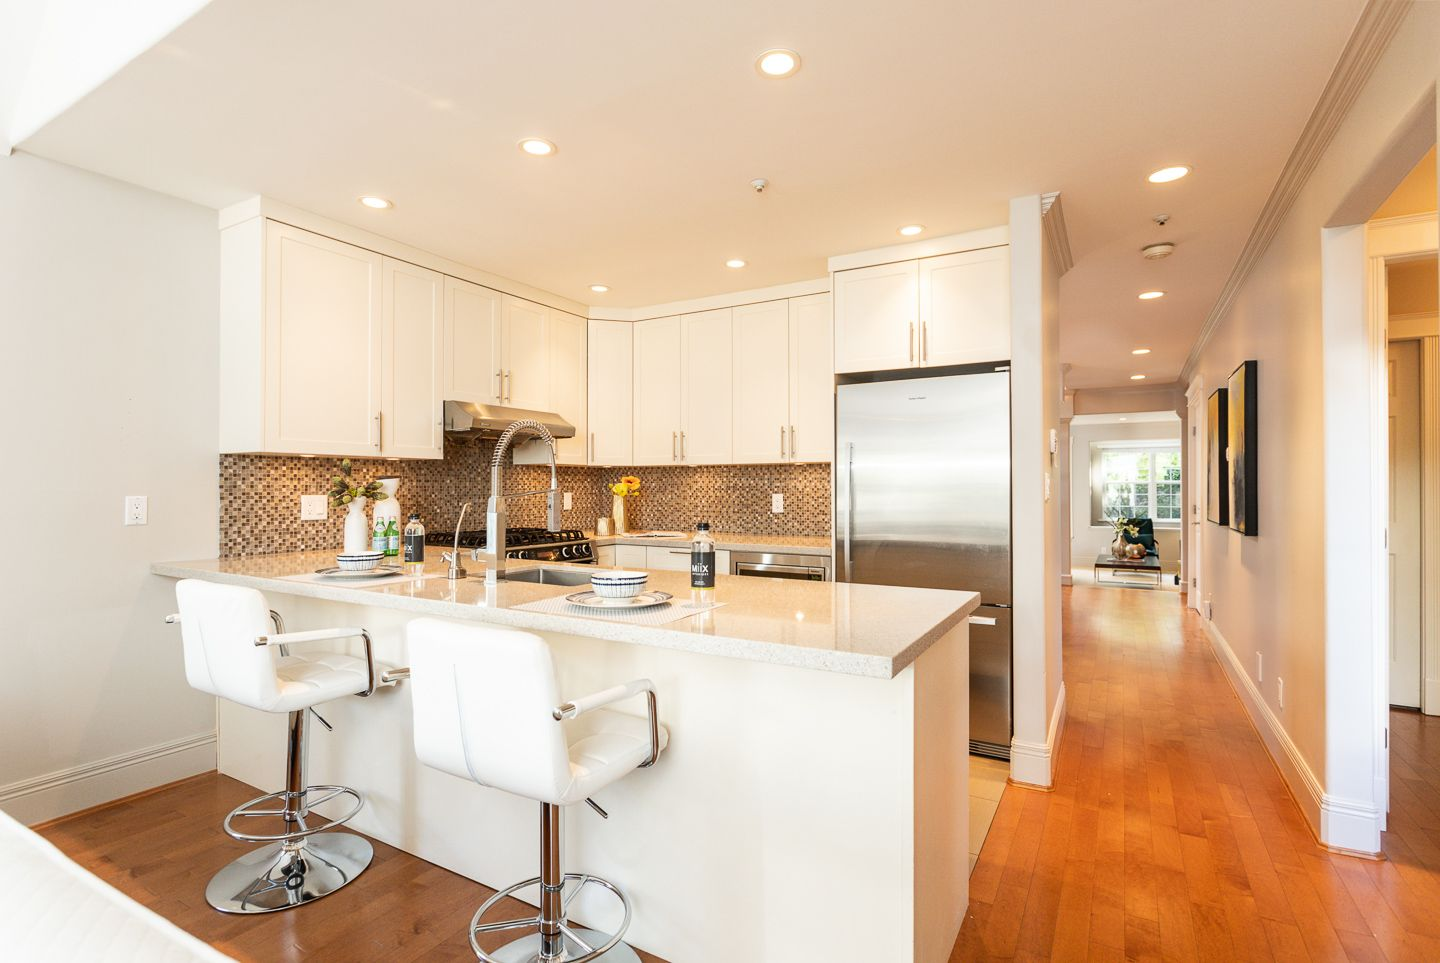 Photo 8: Photos: 2267 WEST 13TH AV in VANCOUVER: Kitsilano 1/2 Duplex for sale (Vancouver West)  : MLS®# R2407976